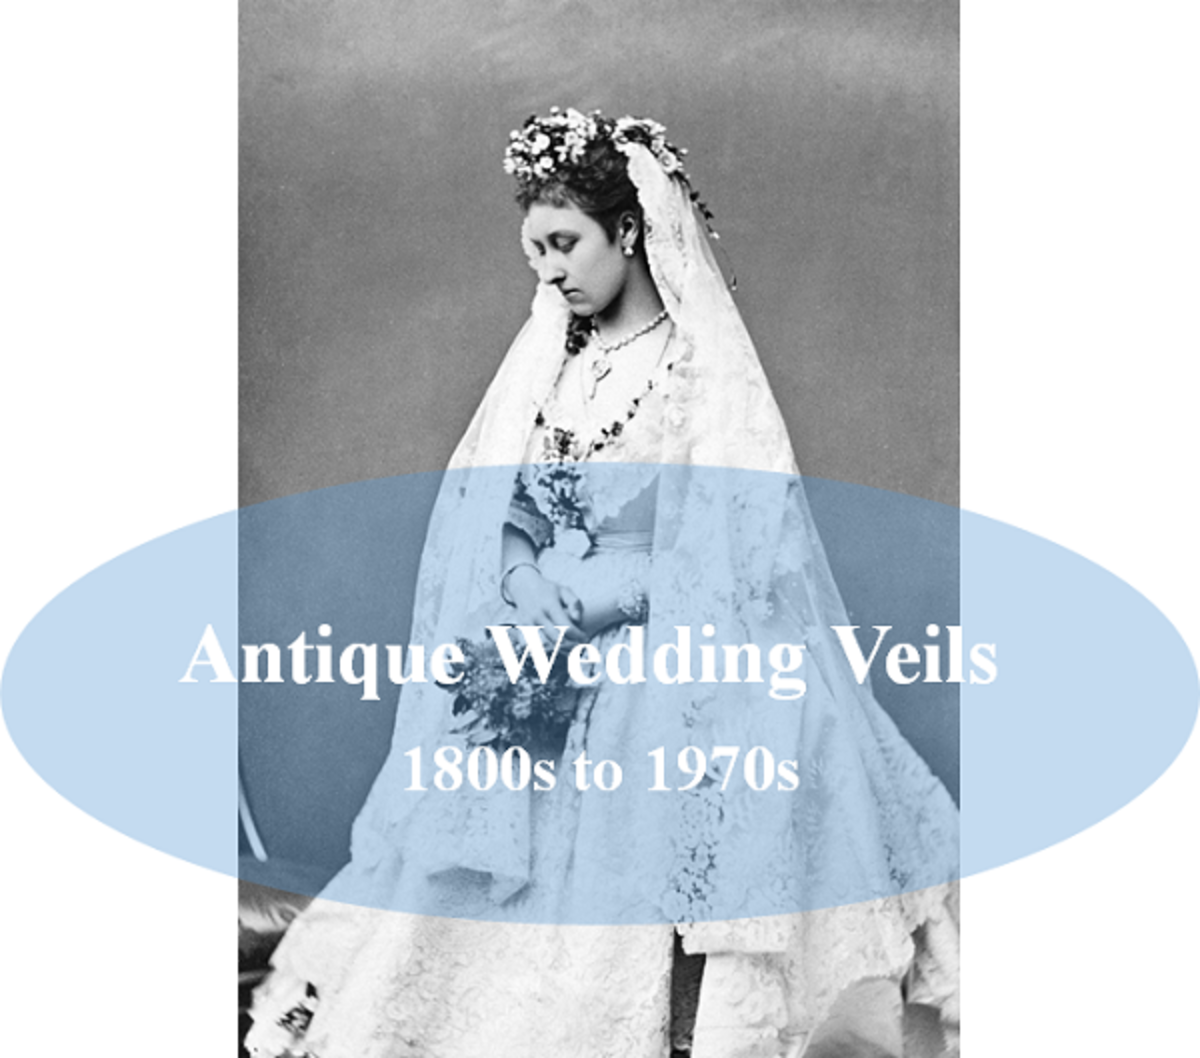 170 Years of Wedding Veil Styles (Bridal Veils 1800s to 1970s)